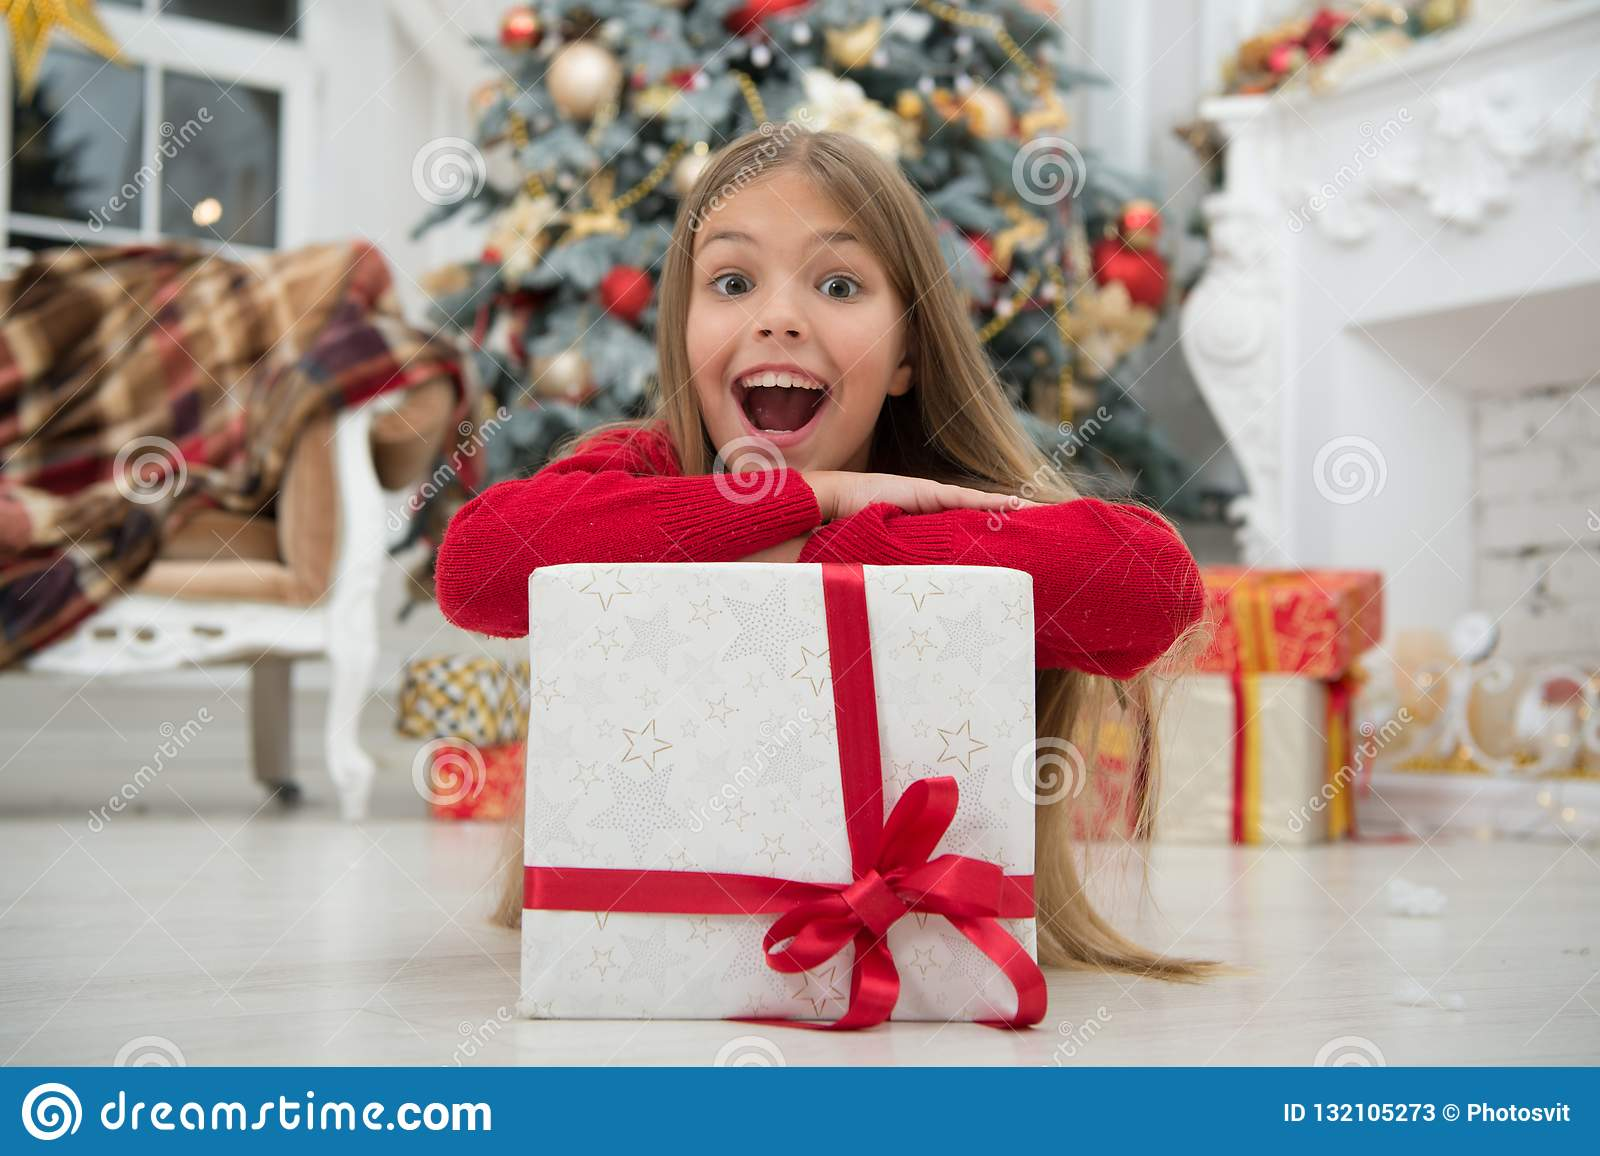 Christmas Is Coming. Small Cute Girl Received Holiday Gift ...